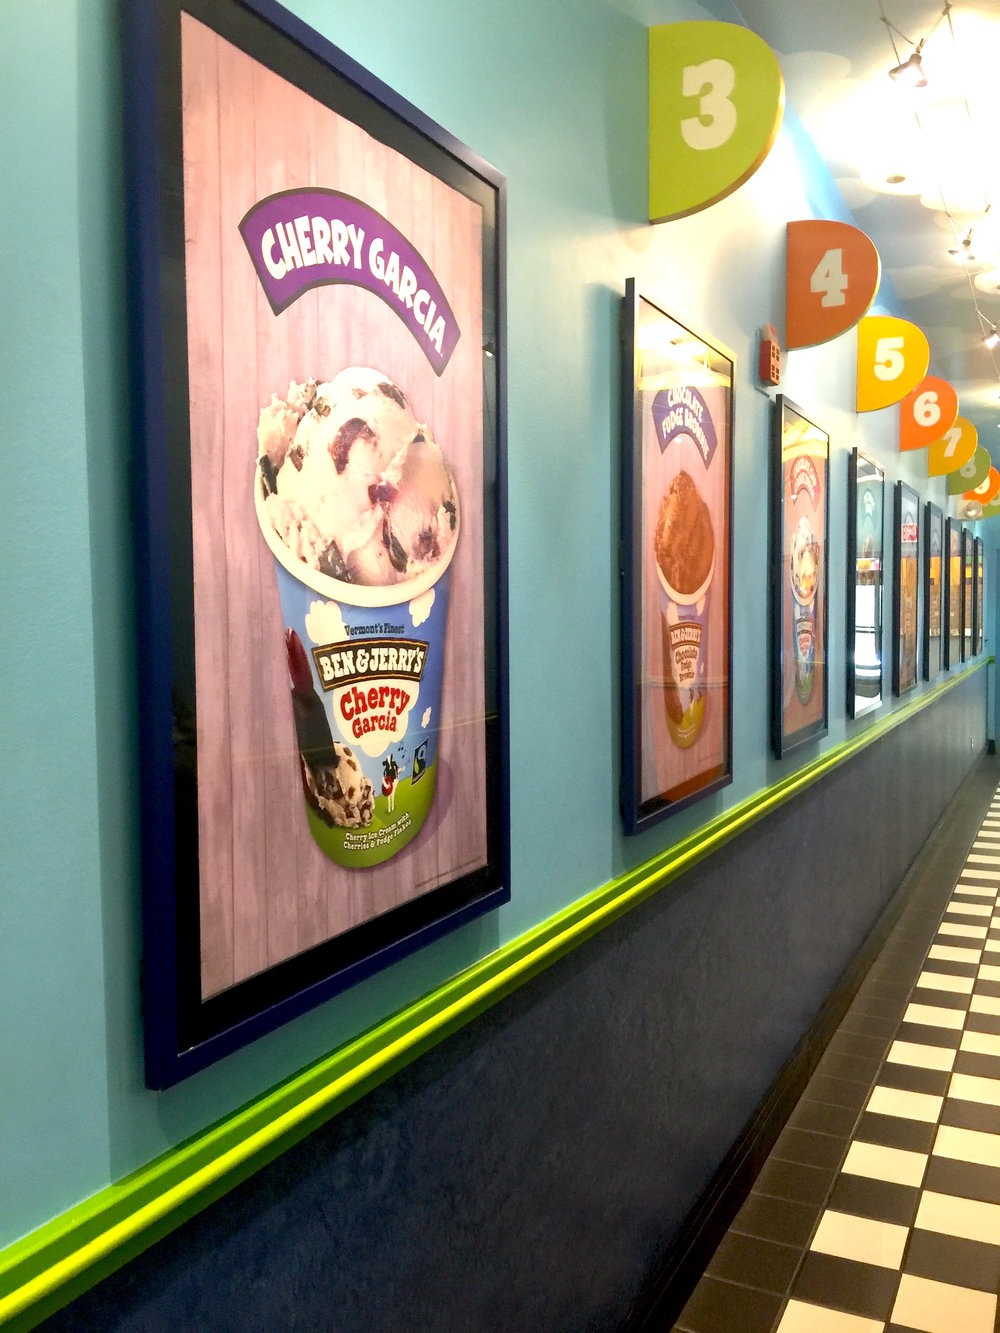 ben-and-jerrys-factory-tour-stowe-vermont-getaway-blog-travel-guide-seacoast-lately.jpg